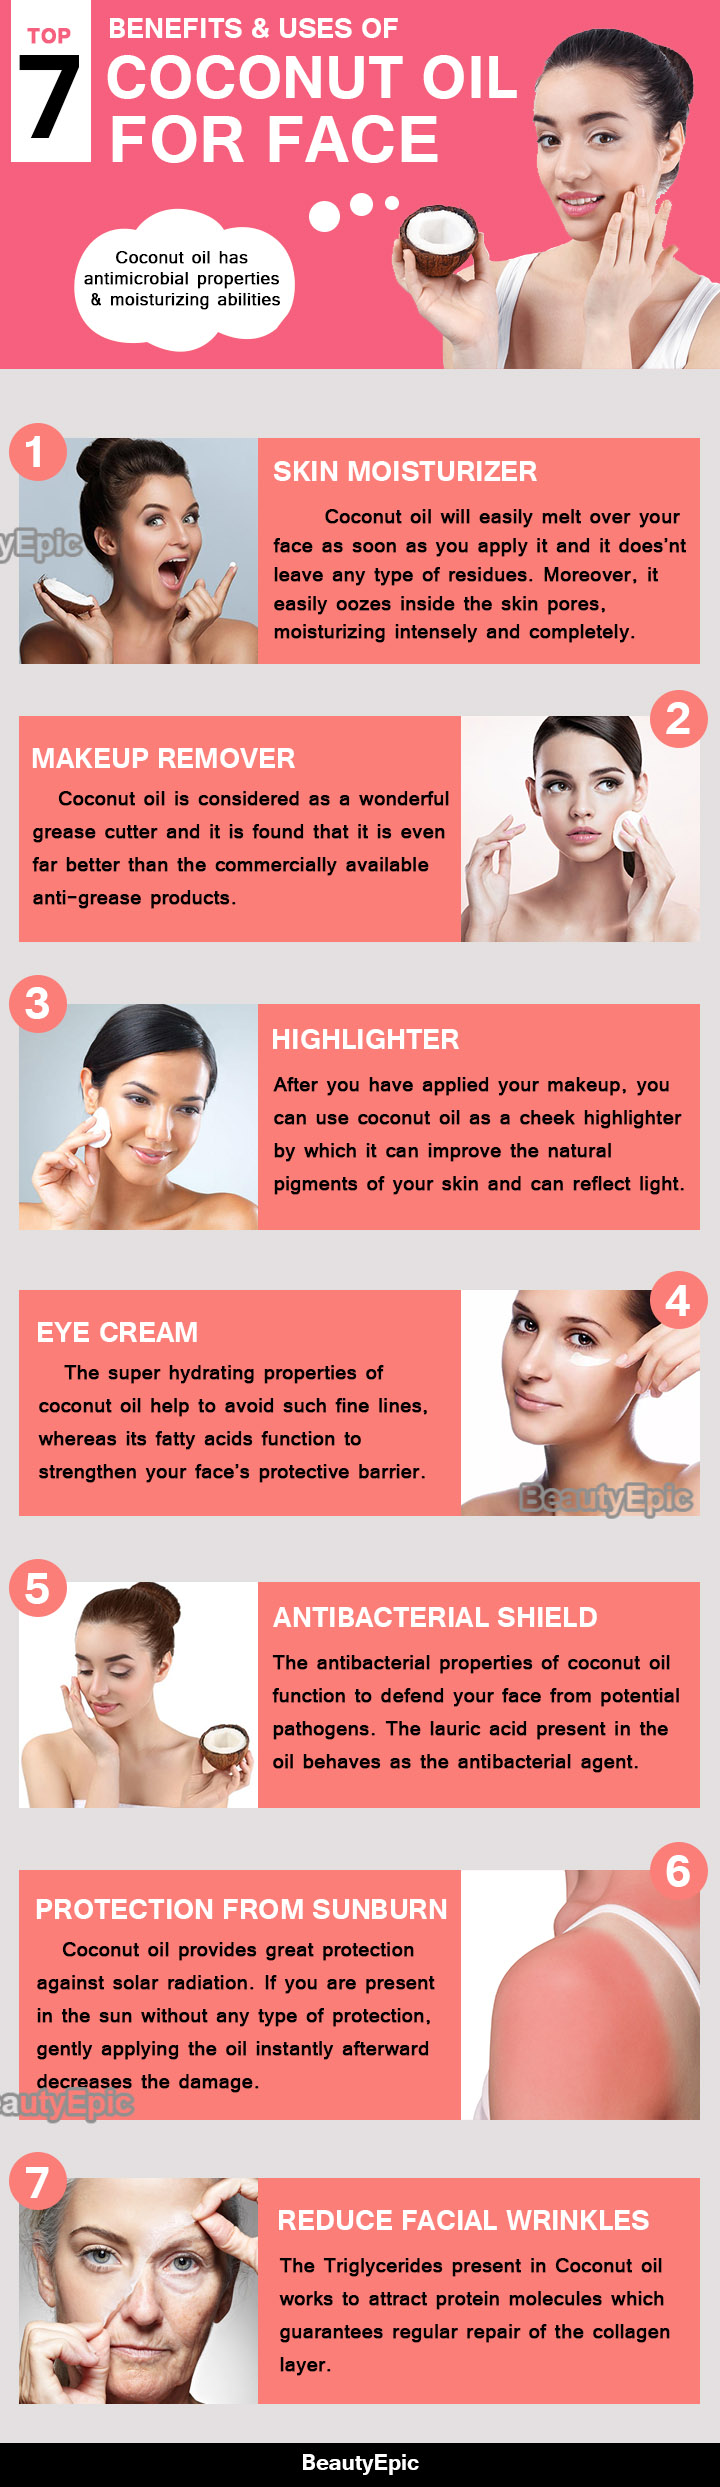 benefits of coconut oil for face